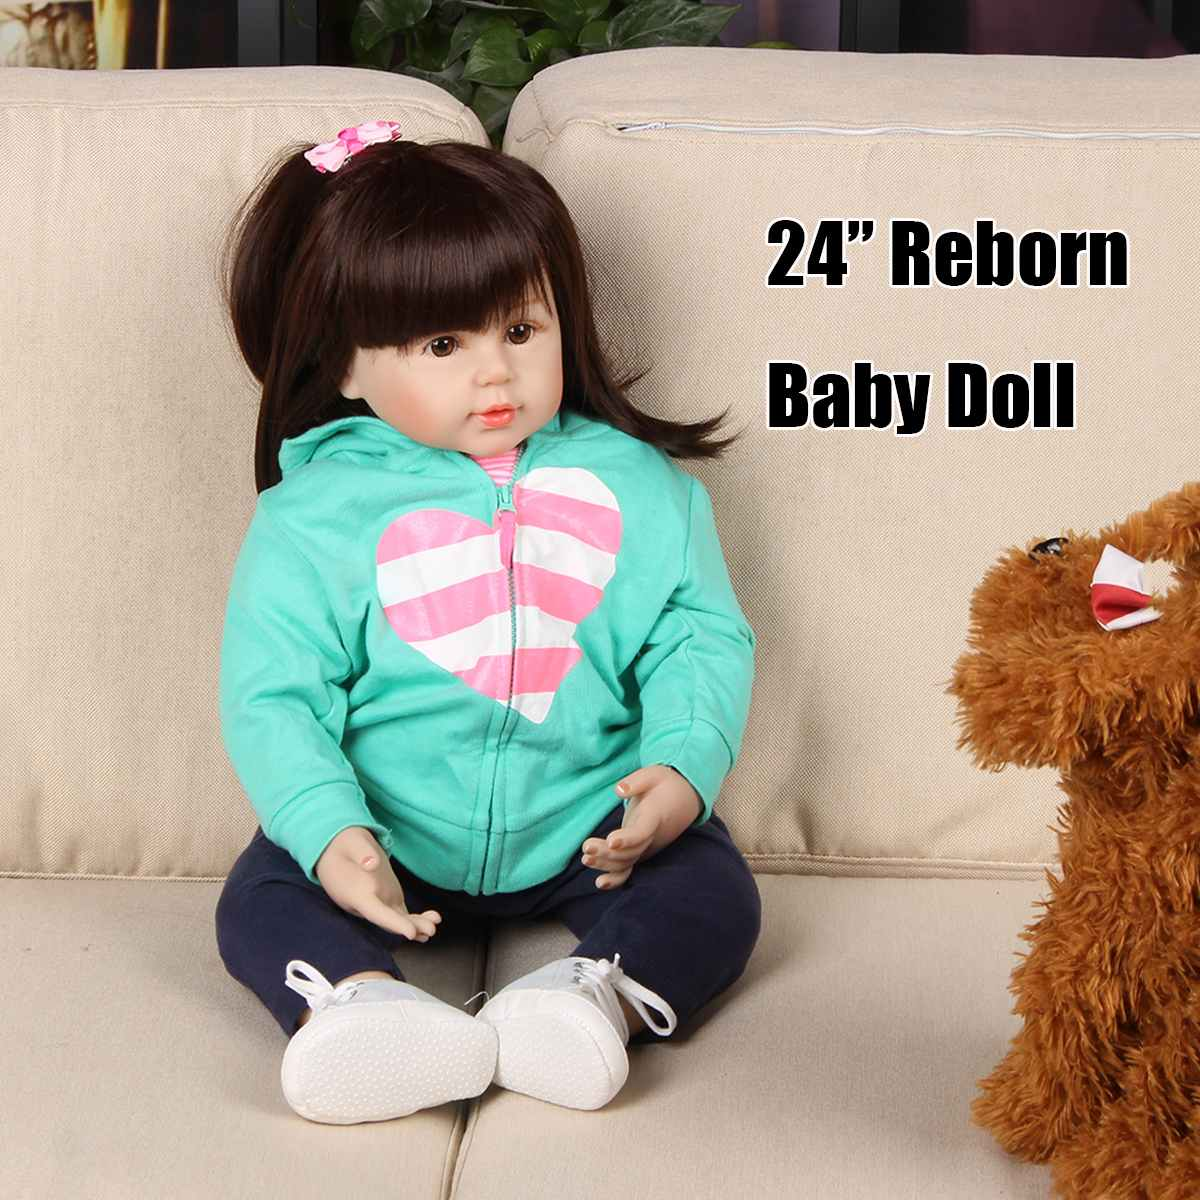 Silicone Reborn Doll Baby Toys 24inch Vinyl Princess Toddler Girl Babies Doll For Christmas Gift Birthday Gift Play House ToySilicone Reborn Doll Baby Toys 24inch Vinyl Princess Toddler Girl Babies Doll For Christmas Gift Birthday Gift Play House Toy